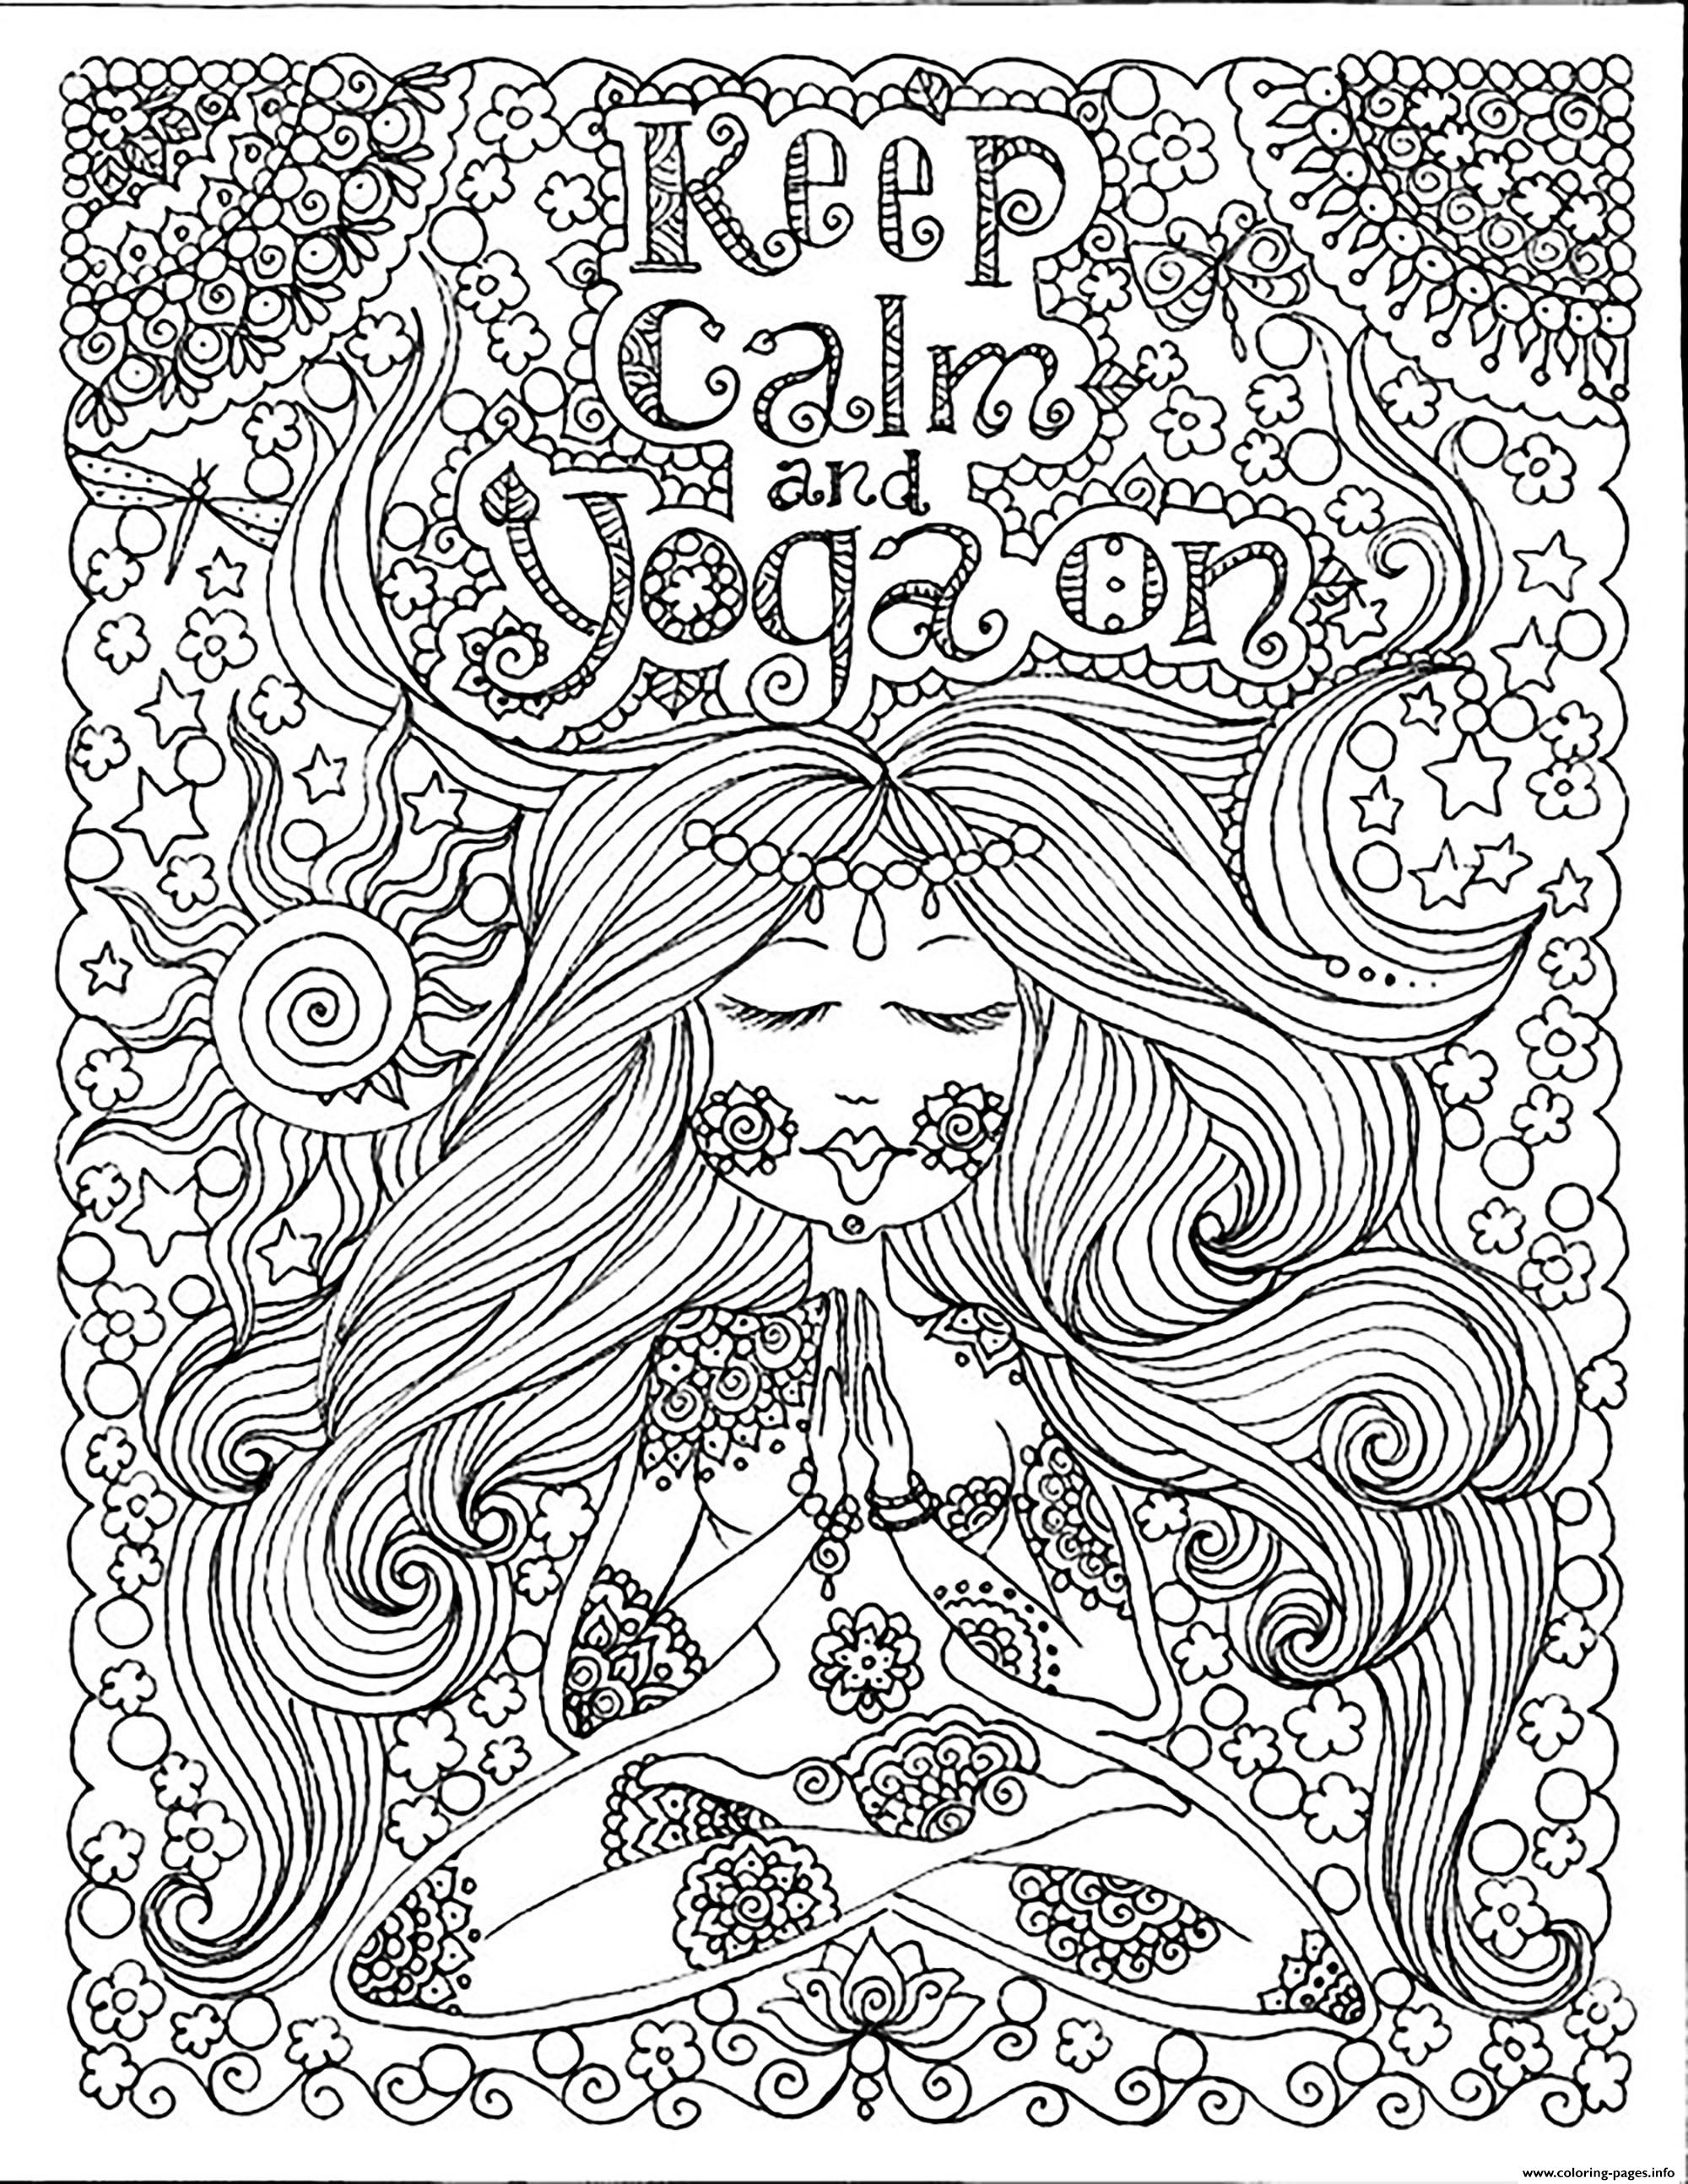 Adult Keep Calm And Do Yoga By Deborah Muller Coloring